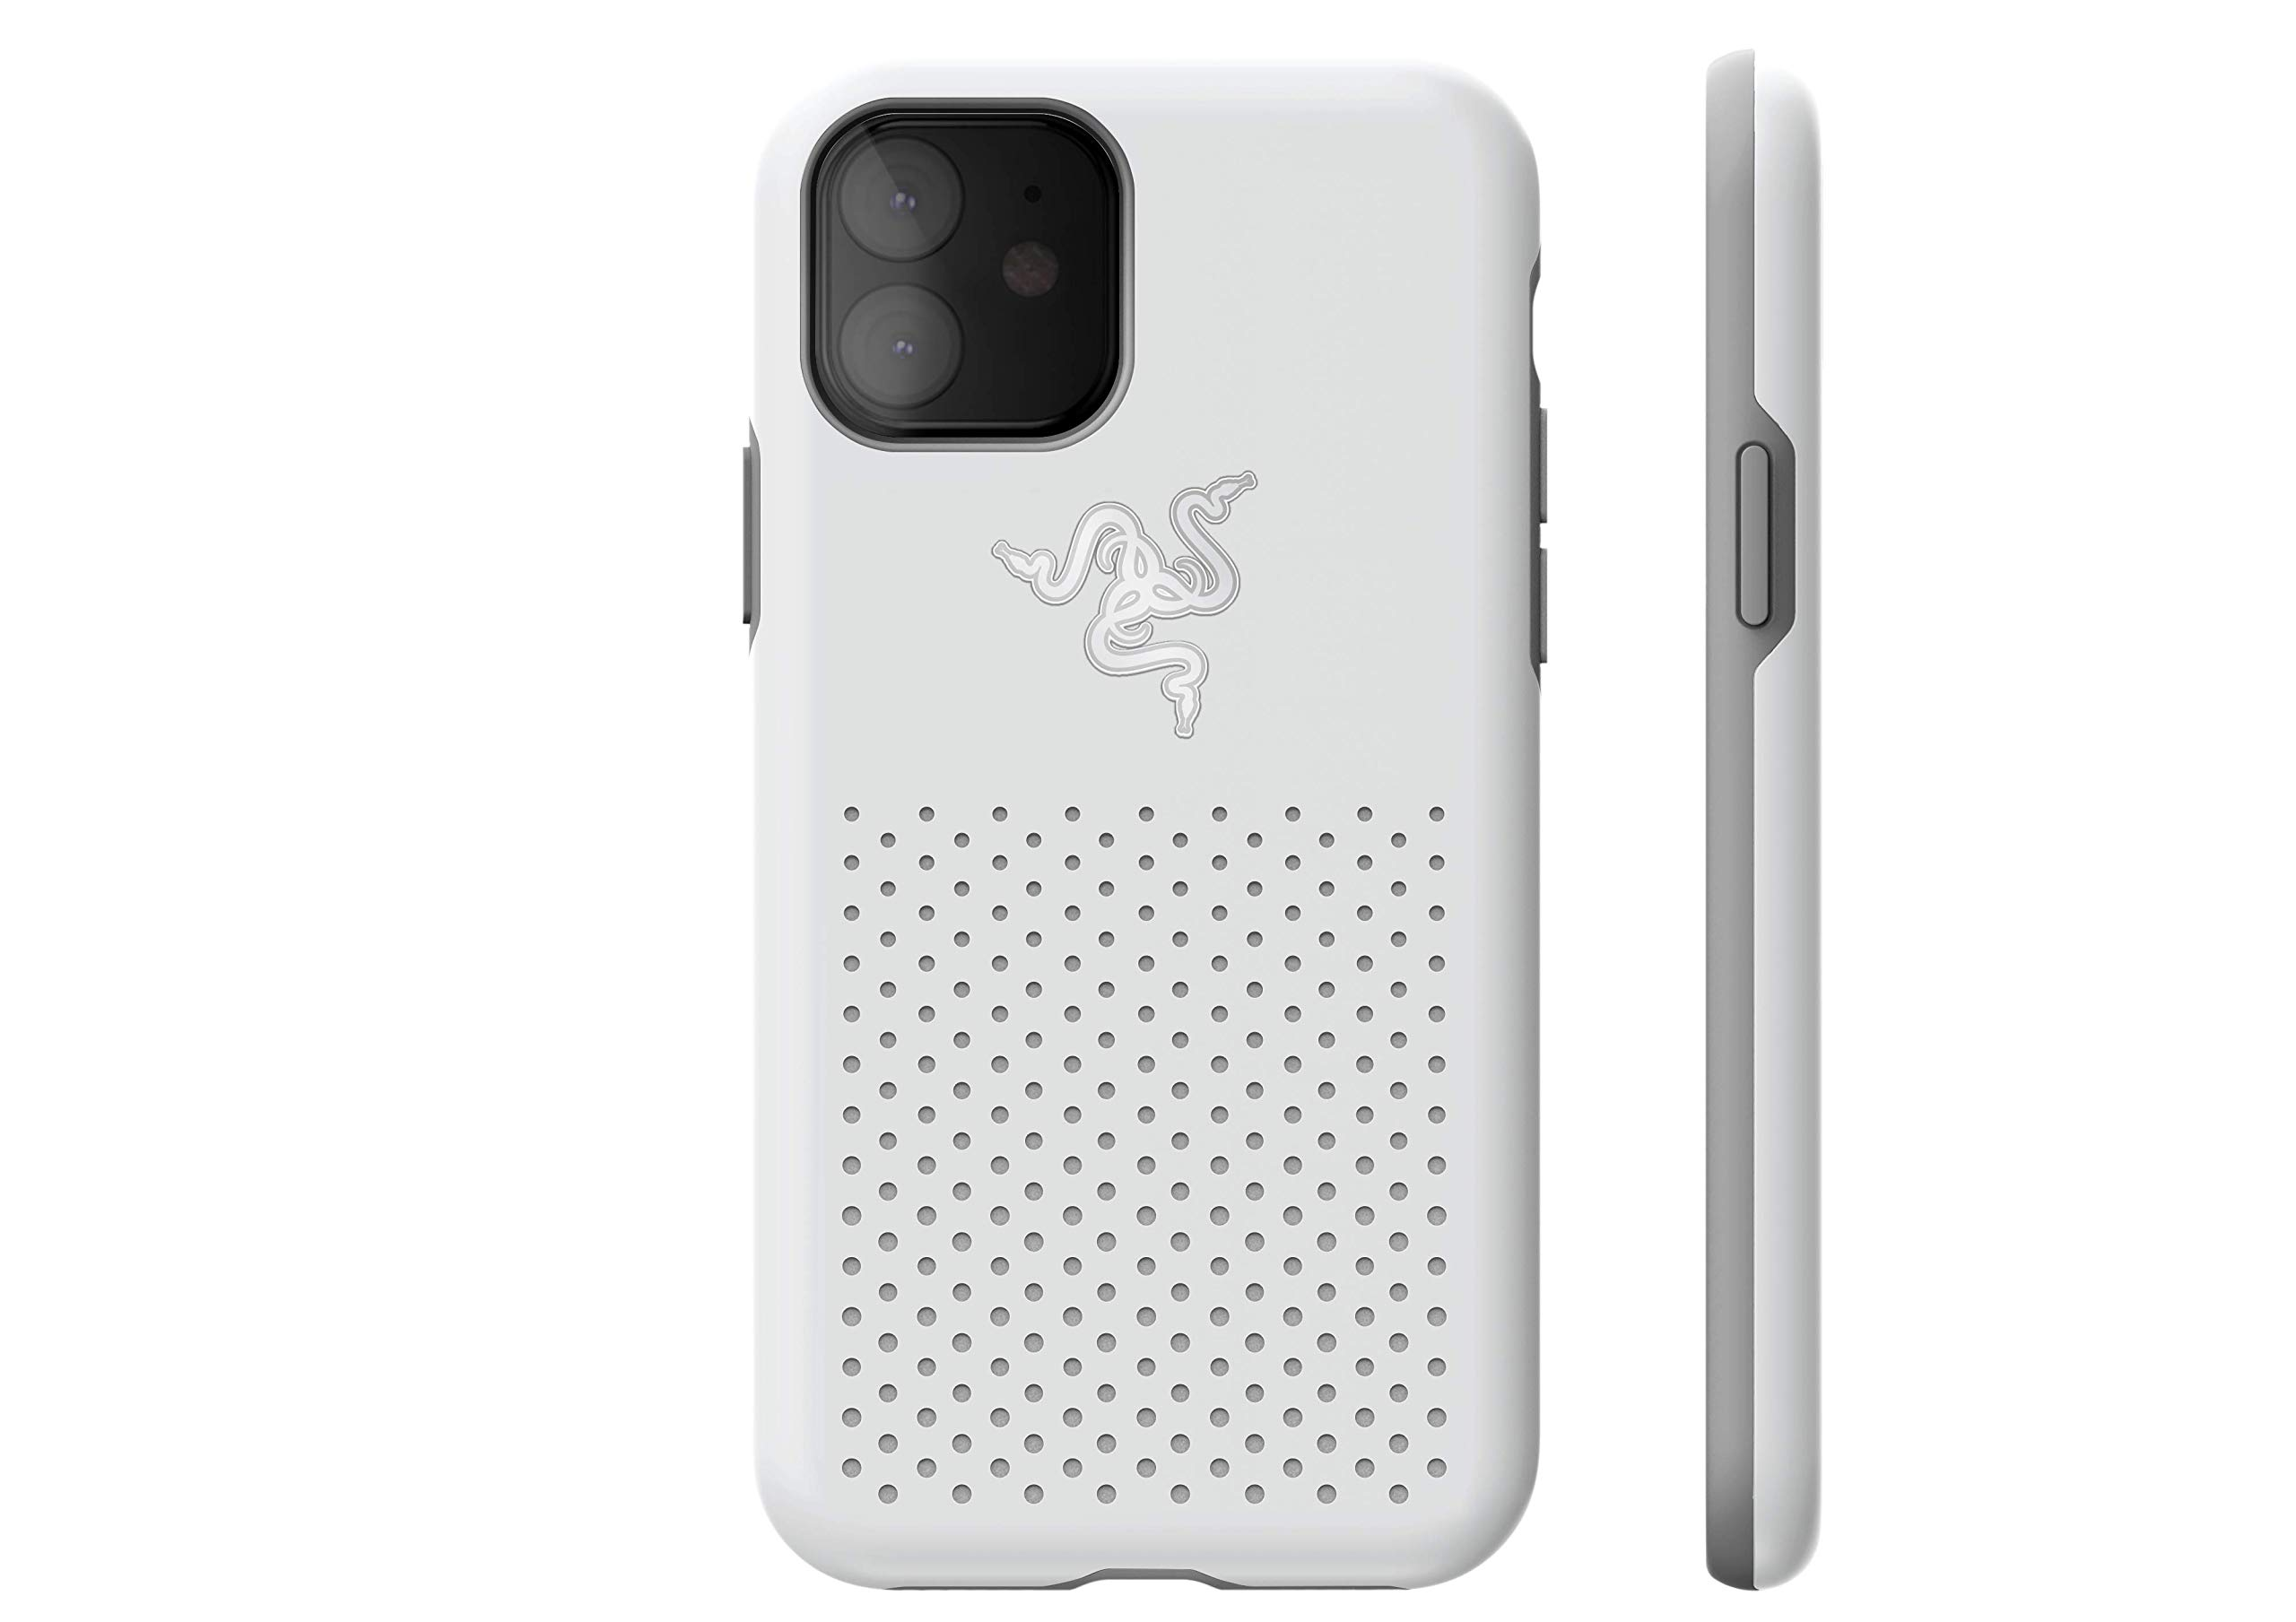 Razer Arctech Pro THS Edition for iPhone 11 Case: Thermaphene & Venting Performance Cooling - Wireless Charging Compatible - Drop-Test Certified up to 10 ft - Mercury White